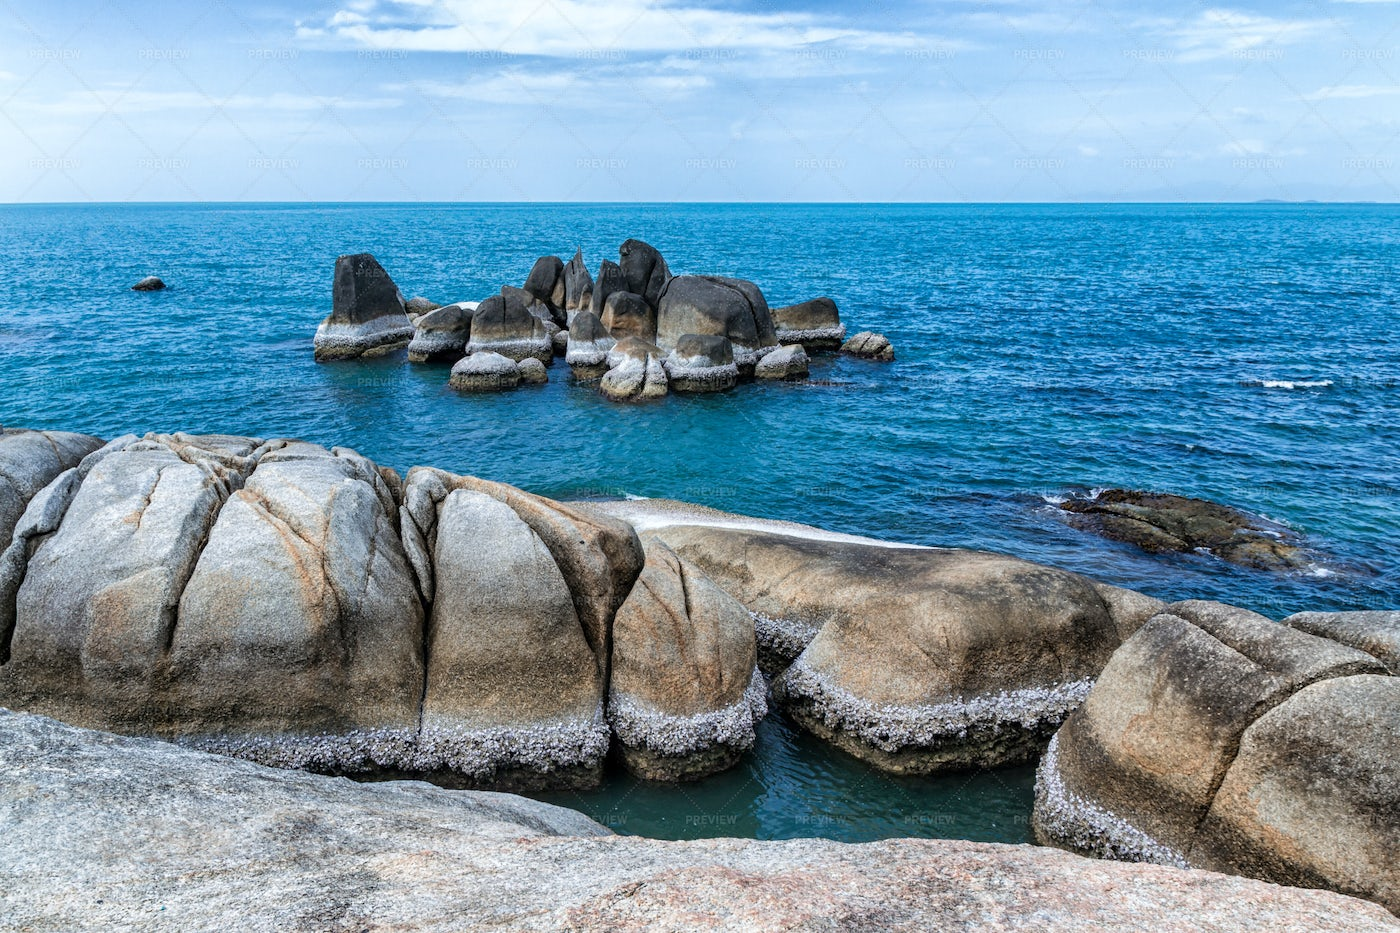 Stones In Blue Sea Water: Stock Photos